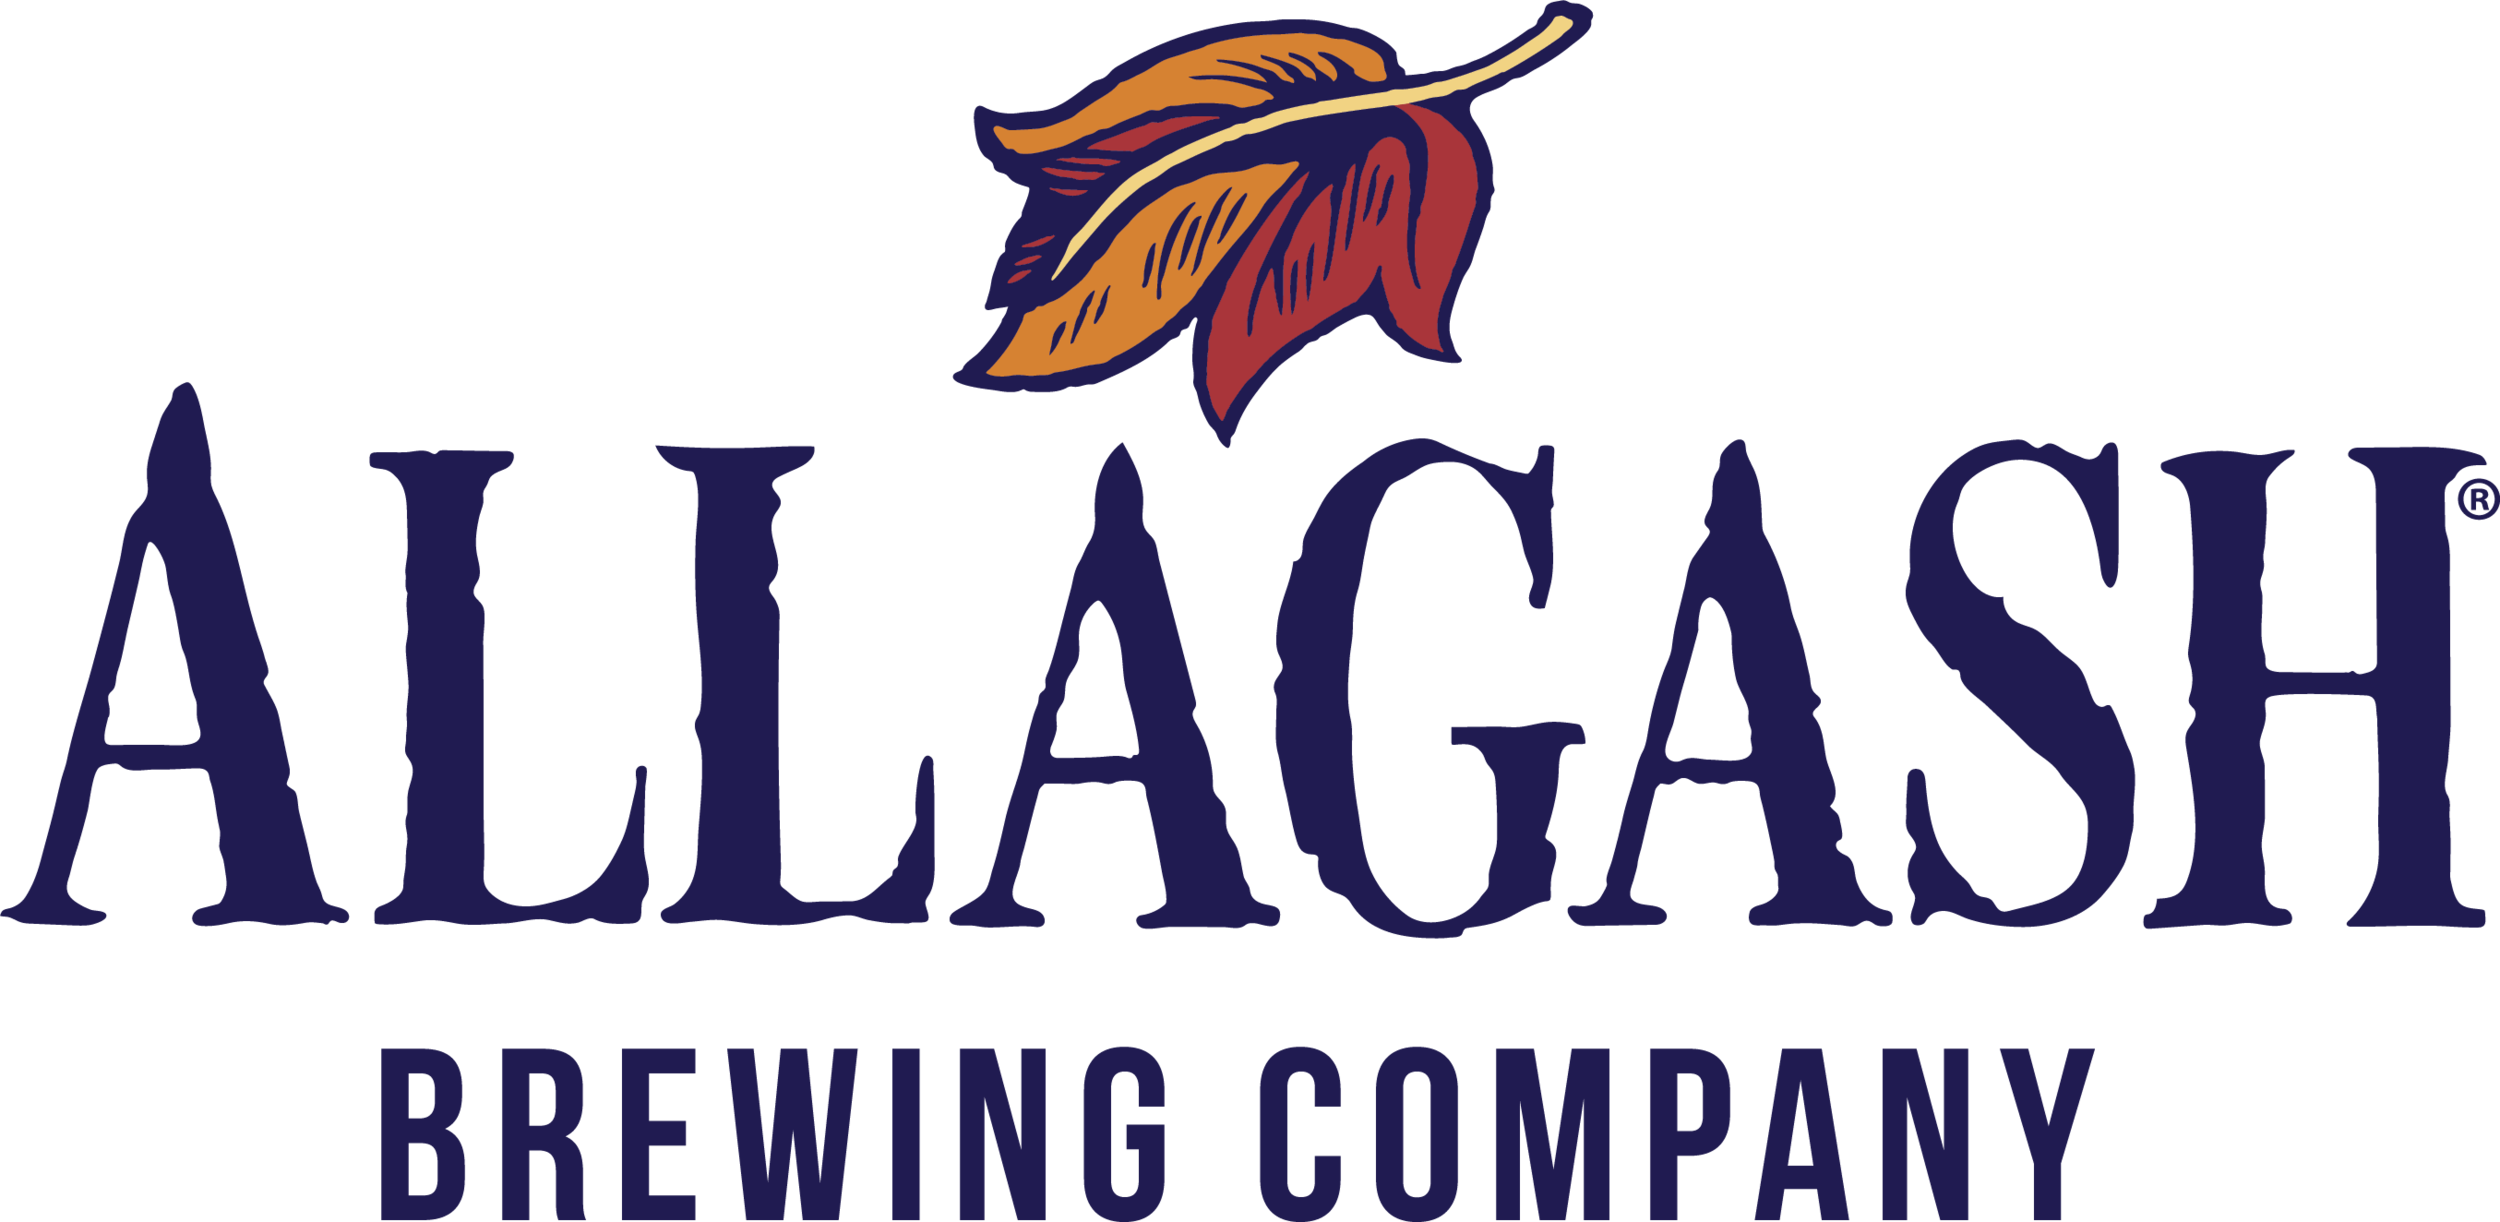 Allagash Brewing徽标Secondary Full Color.png